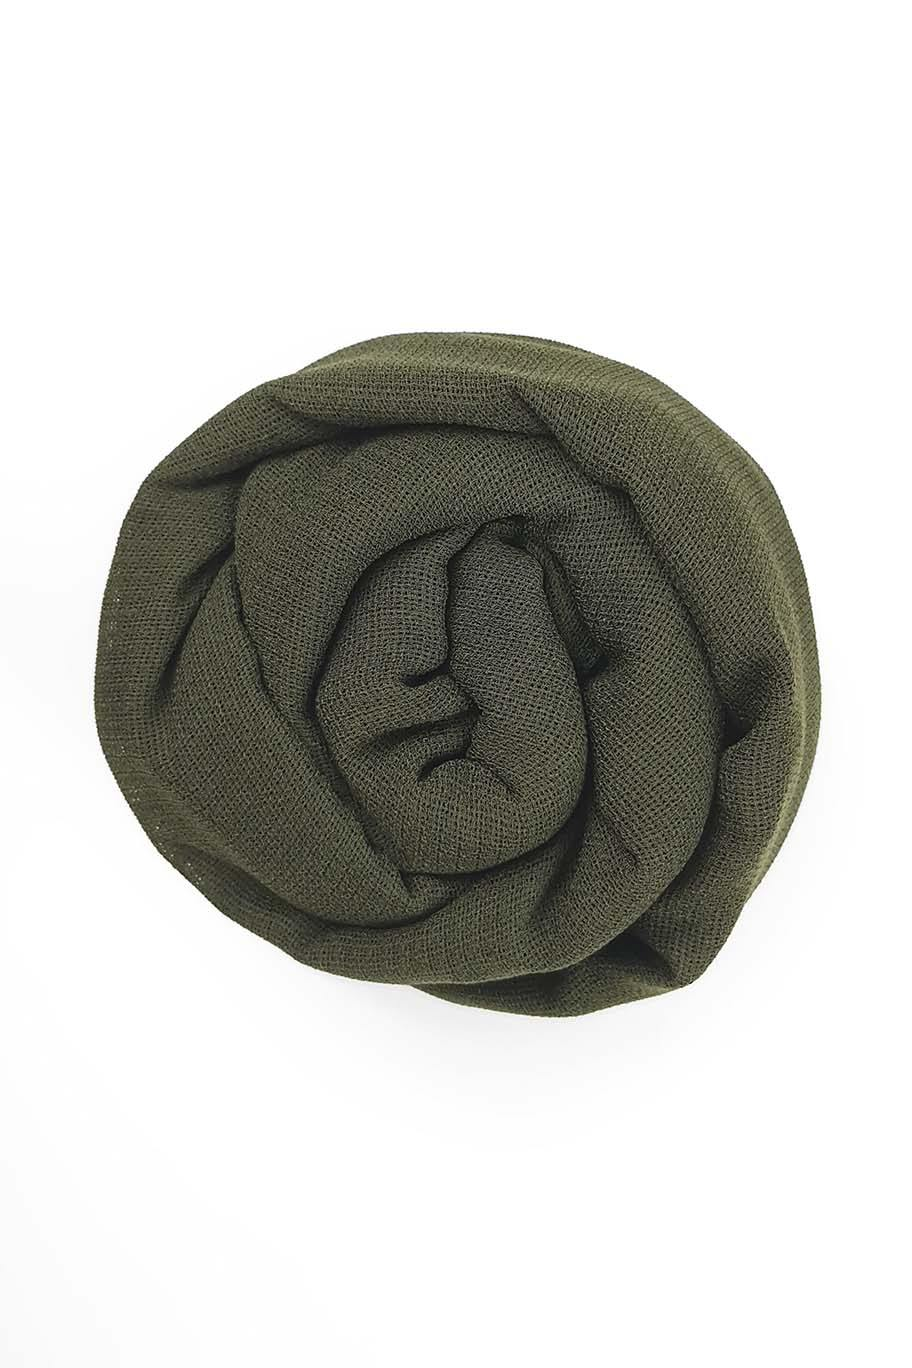 Deep Olive Green Jute Cotton - Jute-Cotton Hijab - The Modest Look